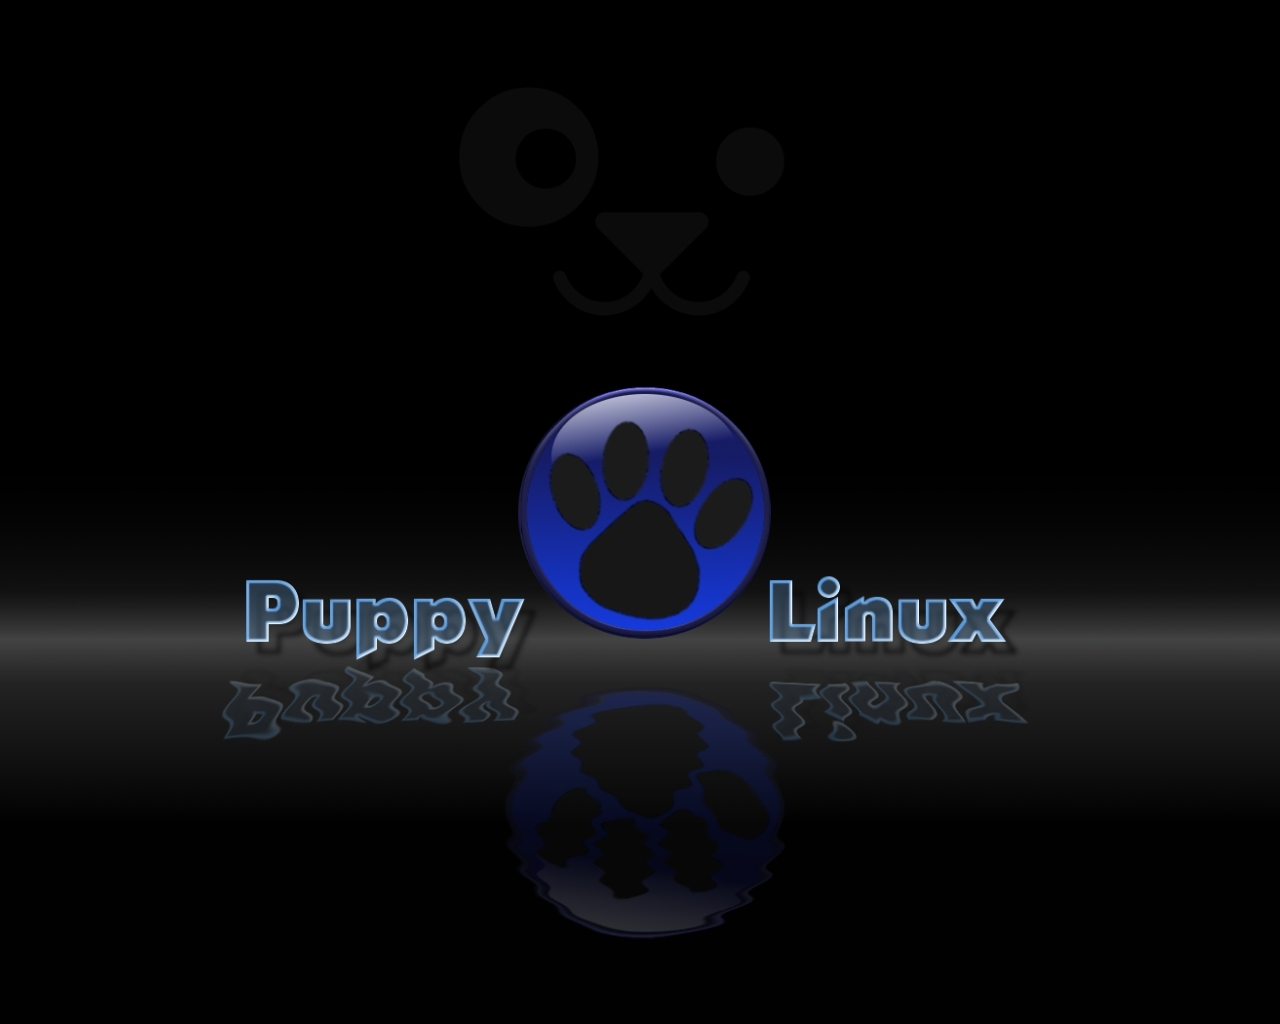 puppy linux - DriverLayer Search Engine